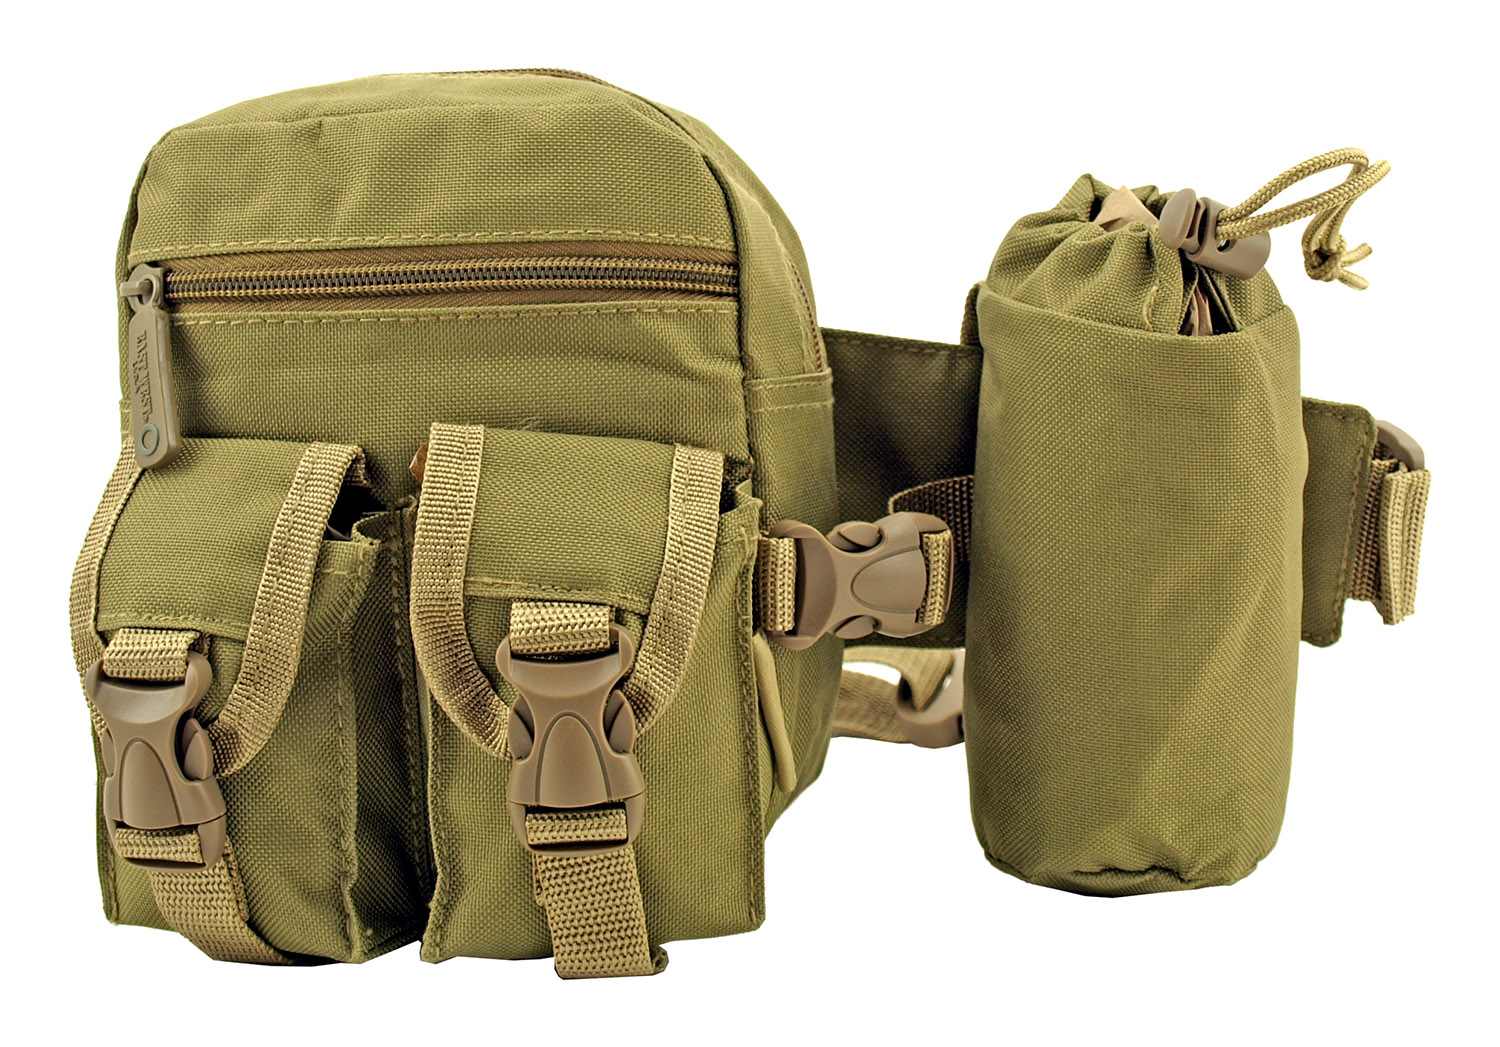 Rock Climbing Trail Hiking Tactical Specific Waist Hip Bag with Water Carrier - Desert Tan